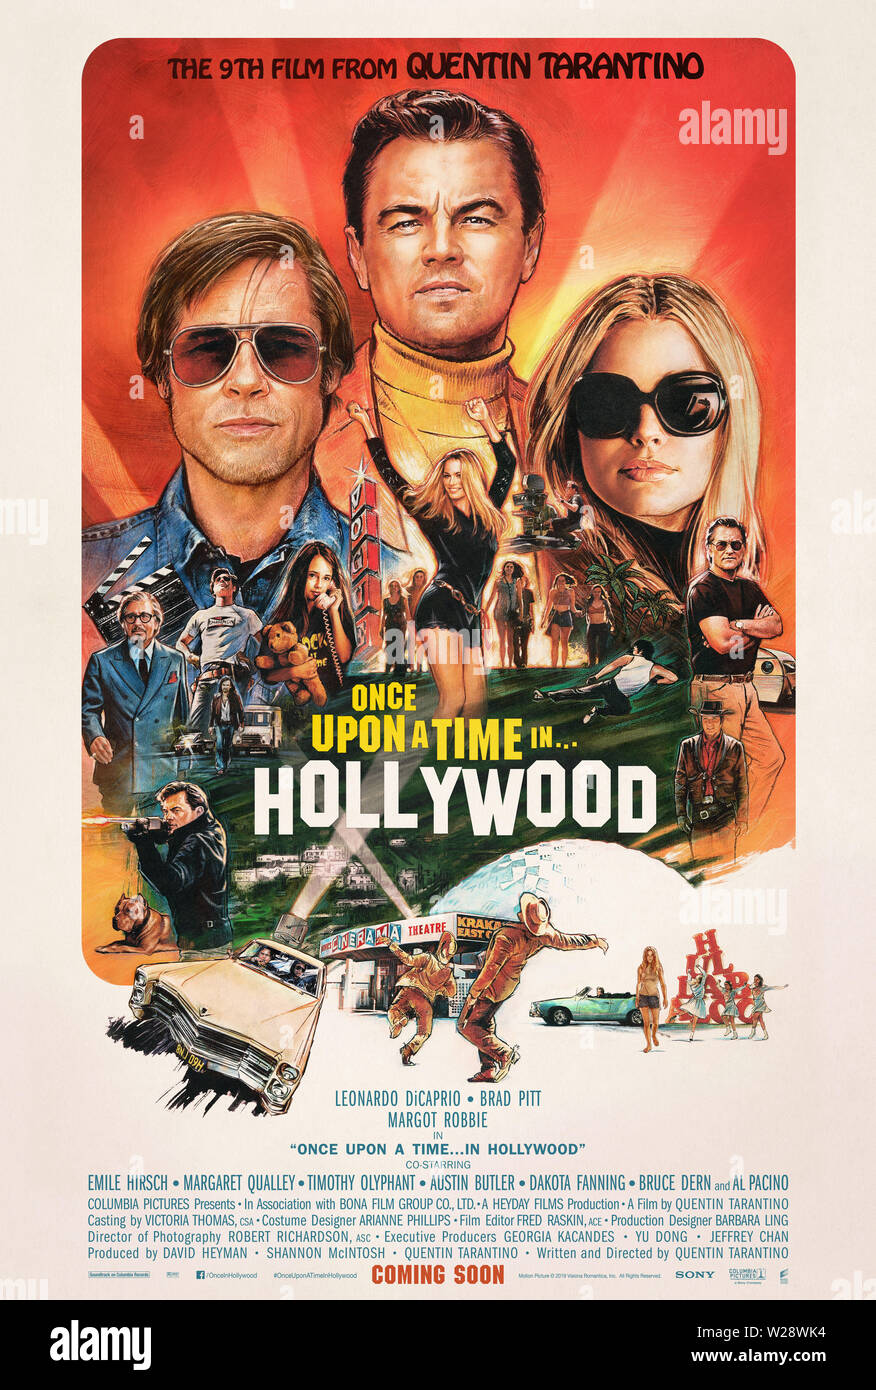 RELEASE DATE: August 9, 2019 TITLE: Once Upon a Time in Hollywood STUDIO: Columbia Pictures DIRECTOR: Quentin Tarantino PLOT: A TV actor and his stunt double embark on an odyssey to make a name for themselves in the film industry during the Charles Manson murders in 1969 Los Angeles. STARRING: Brad Pitt, Leonardo DiCaprio and Margot Robbie poster art. (Credit Image: © Columbia Pictures/Entertainment Pictures) - Stock Image